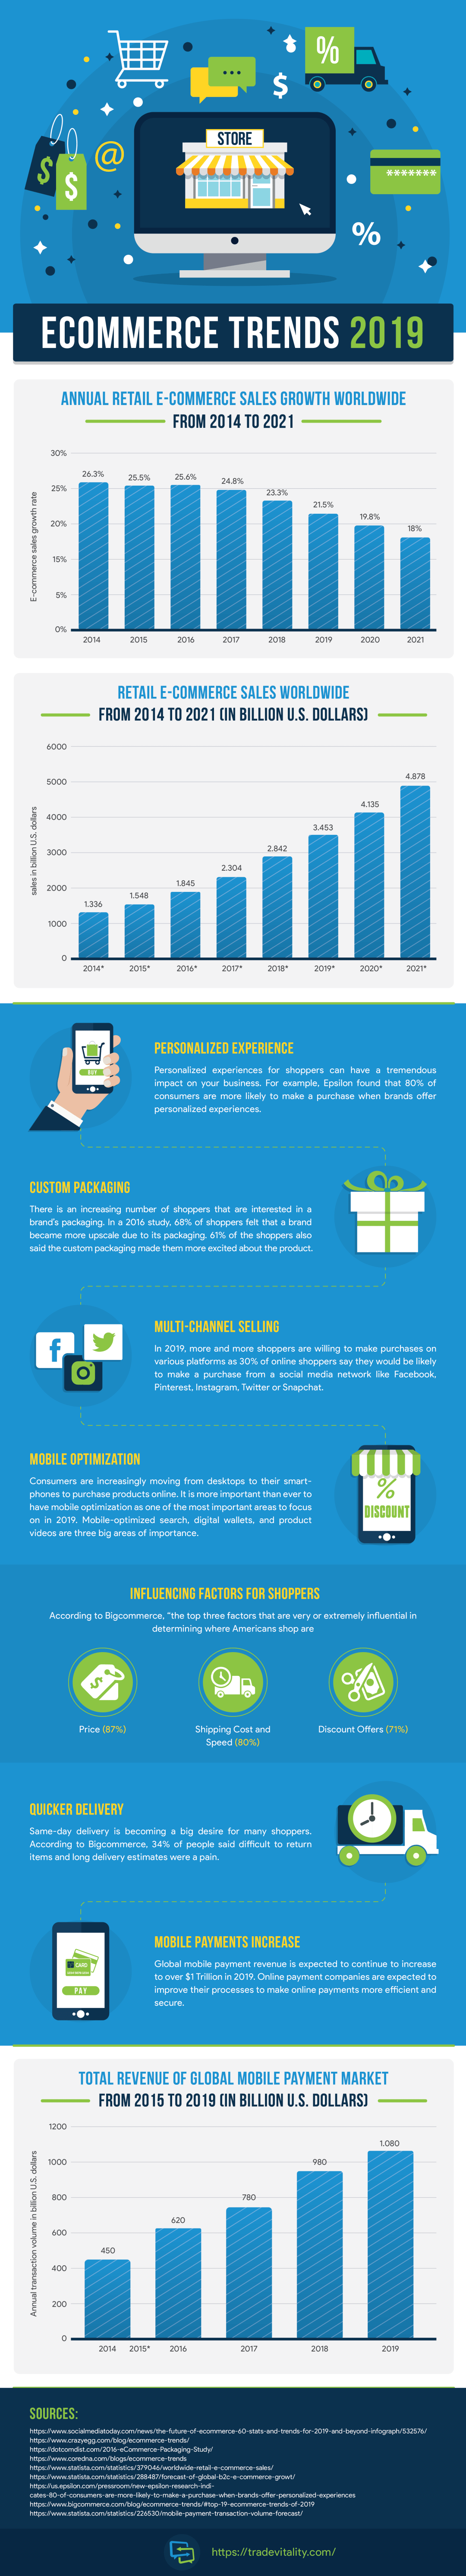 2019 ecommerce trends - This Is How E-commerce Is Going To Take Over In 2019